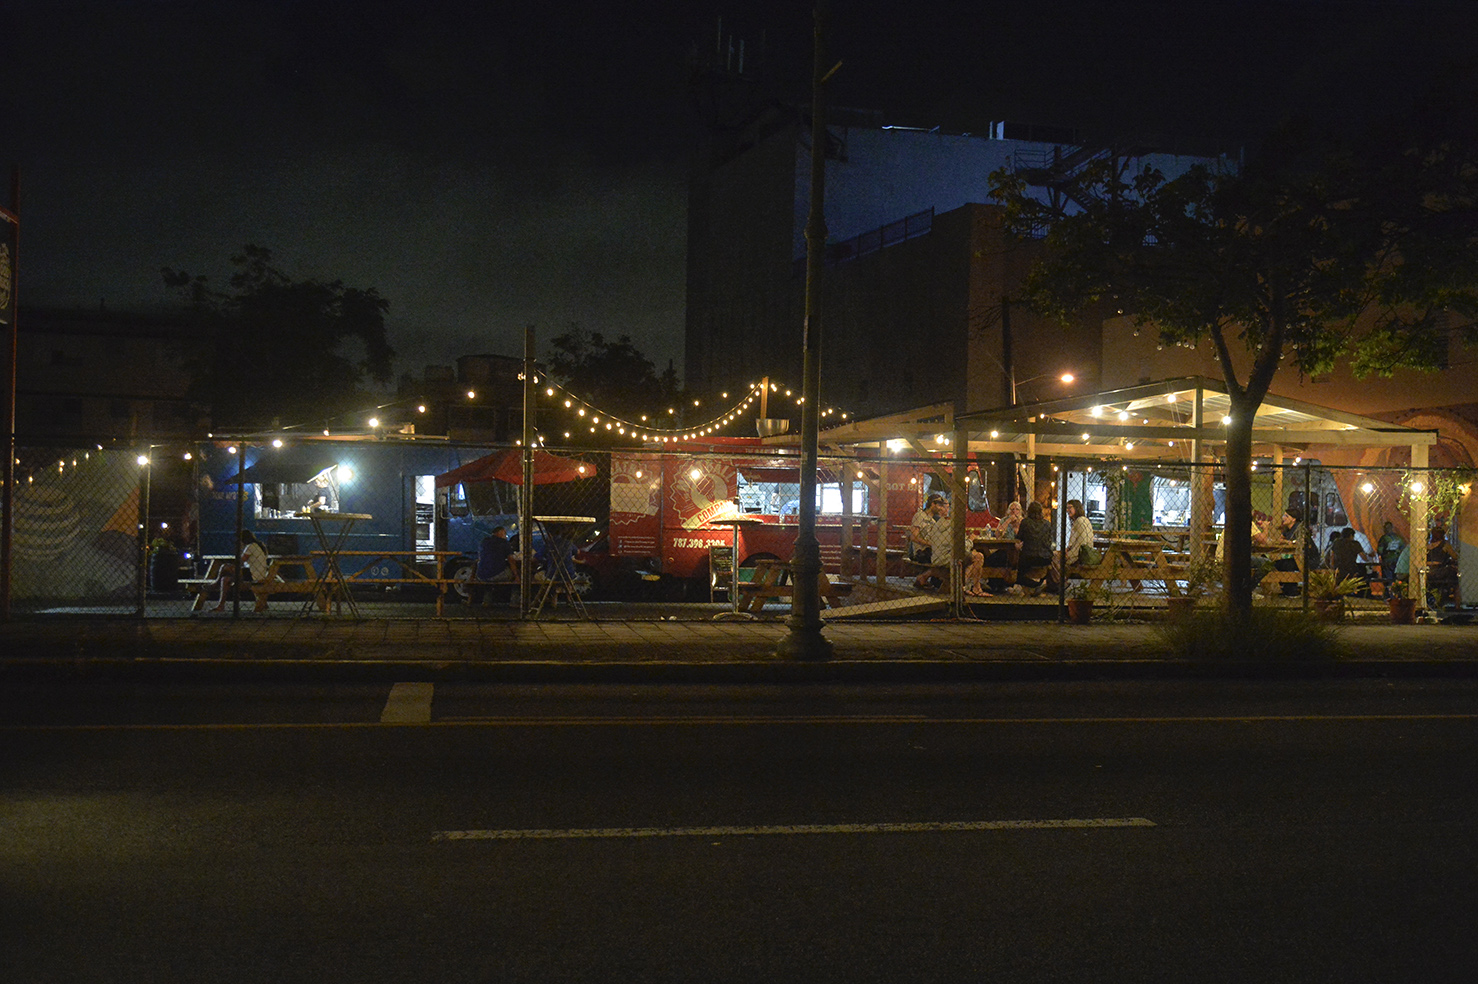 Miramar Food Truck Park opens every Wednesday, Thursday, Friday, Saturday and Sunday.